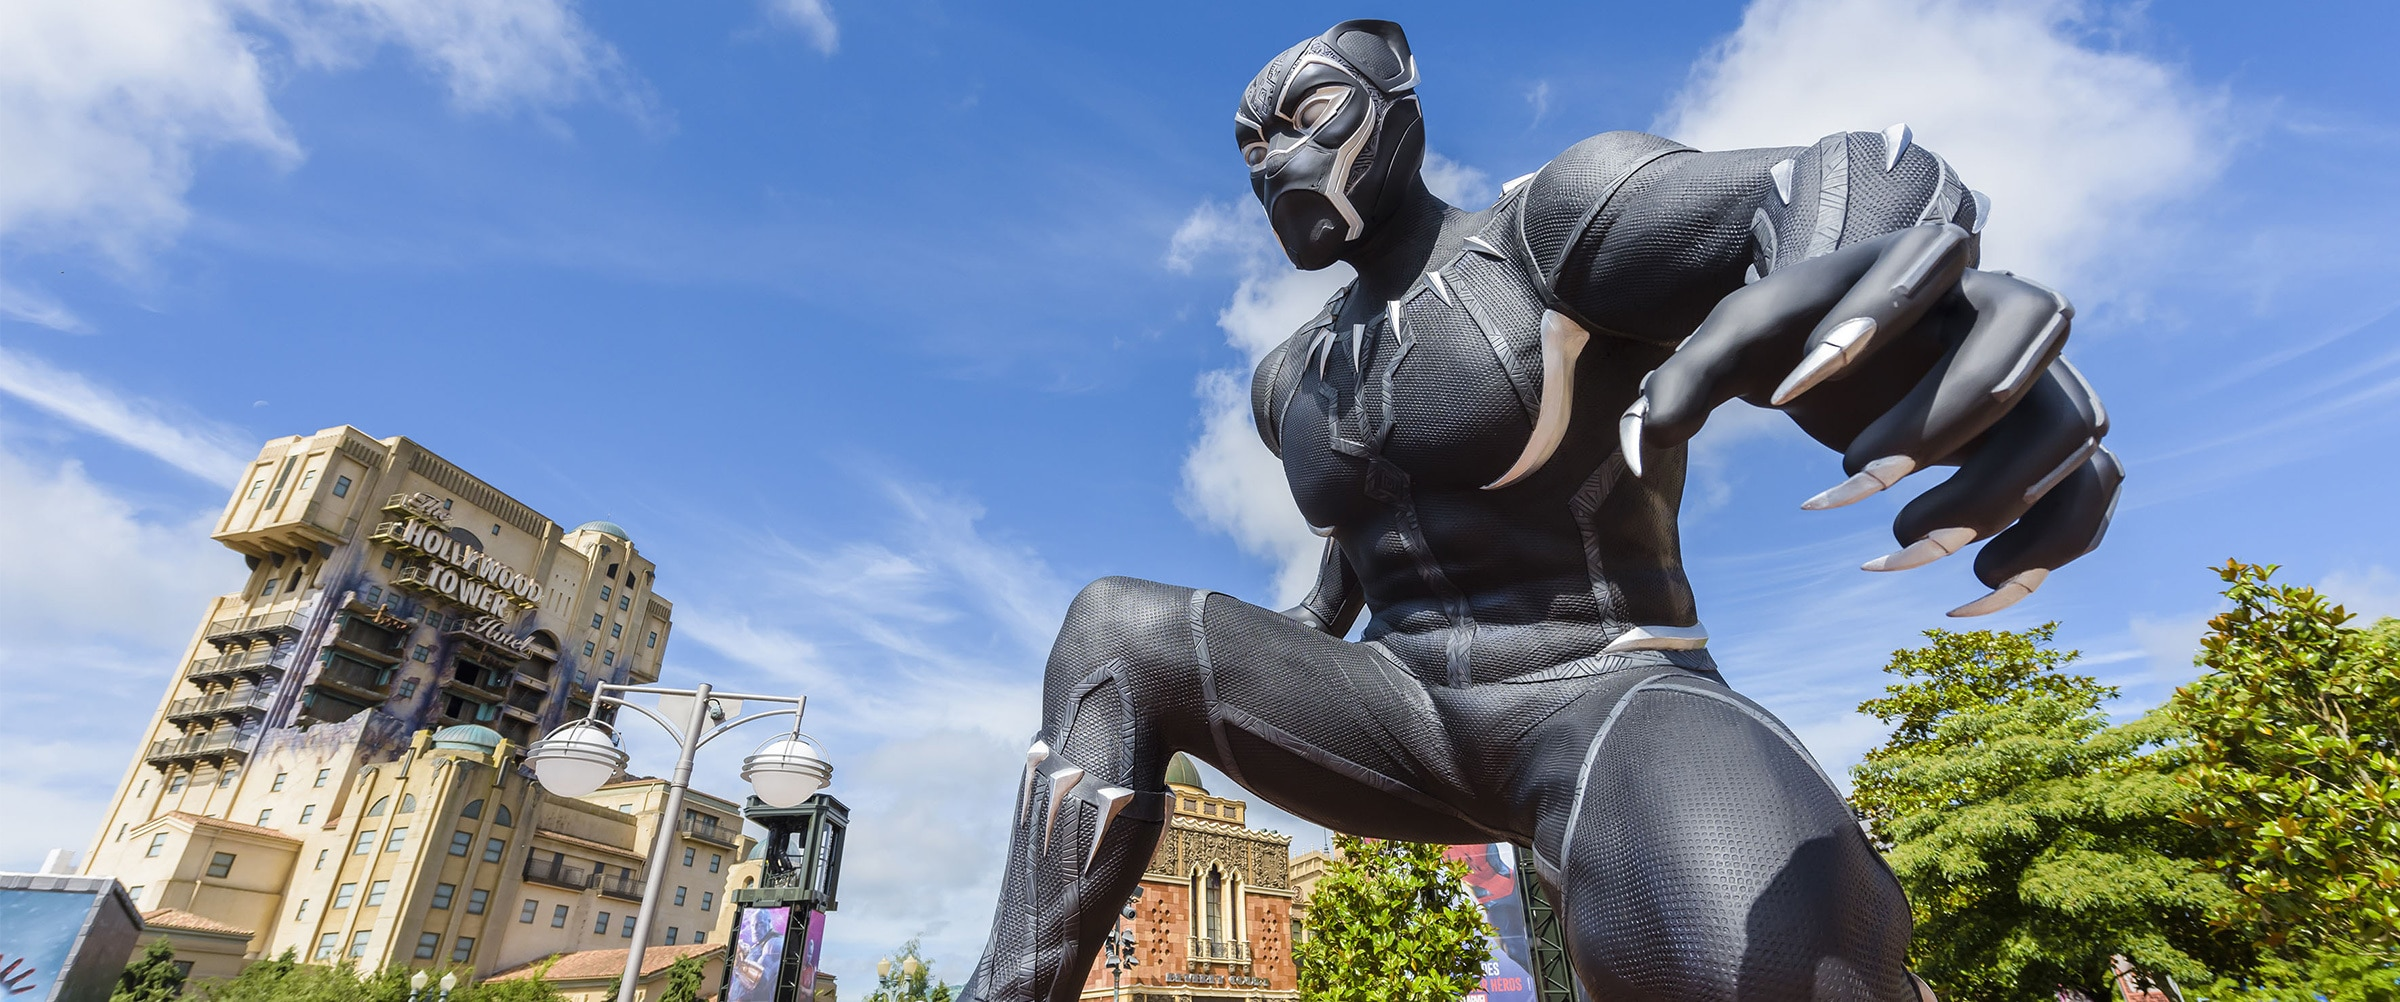 Disneyland Paris | Marvel Summer Article